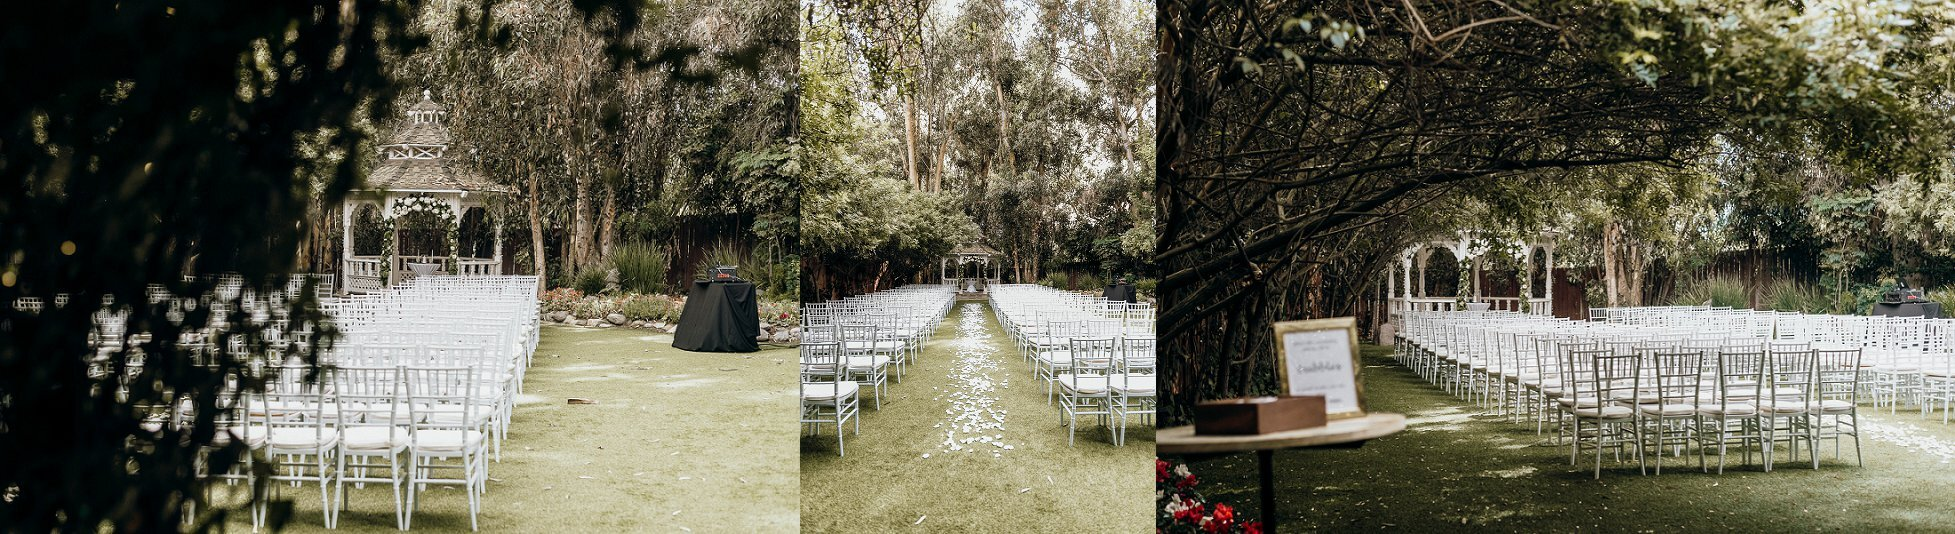 San Diego Wedding Photography - Twin Oaks Gardens_0146.jpg